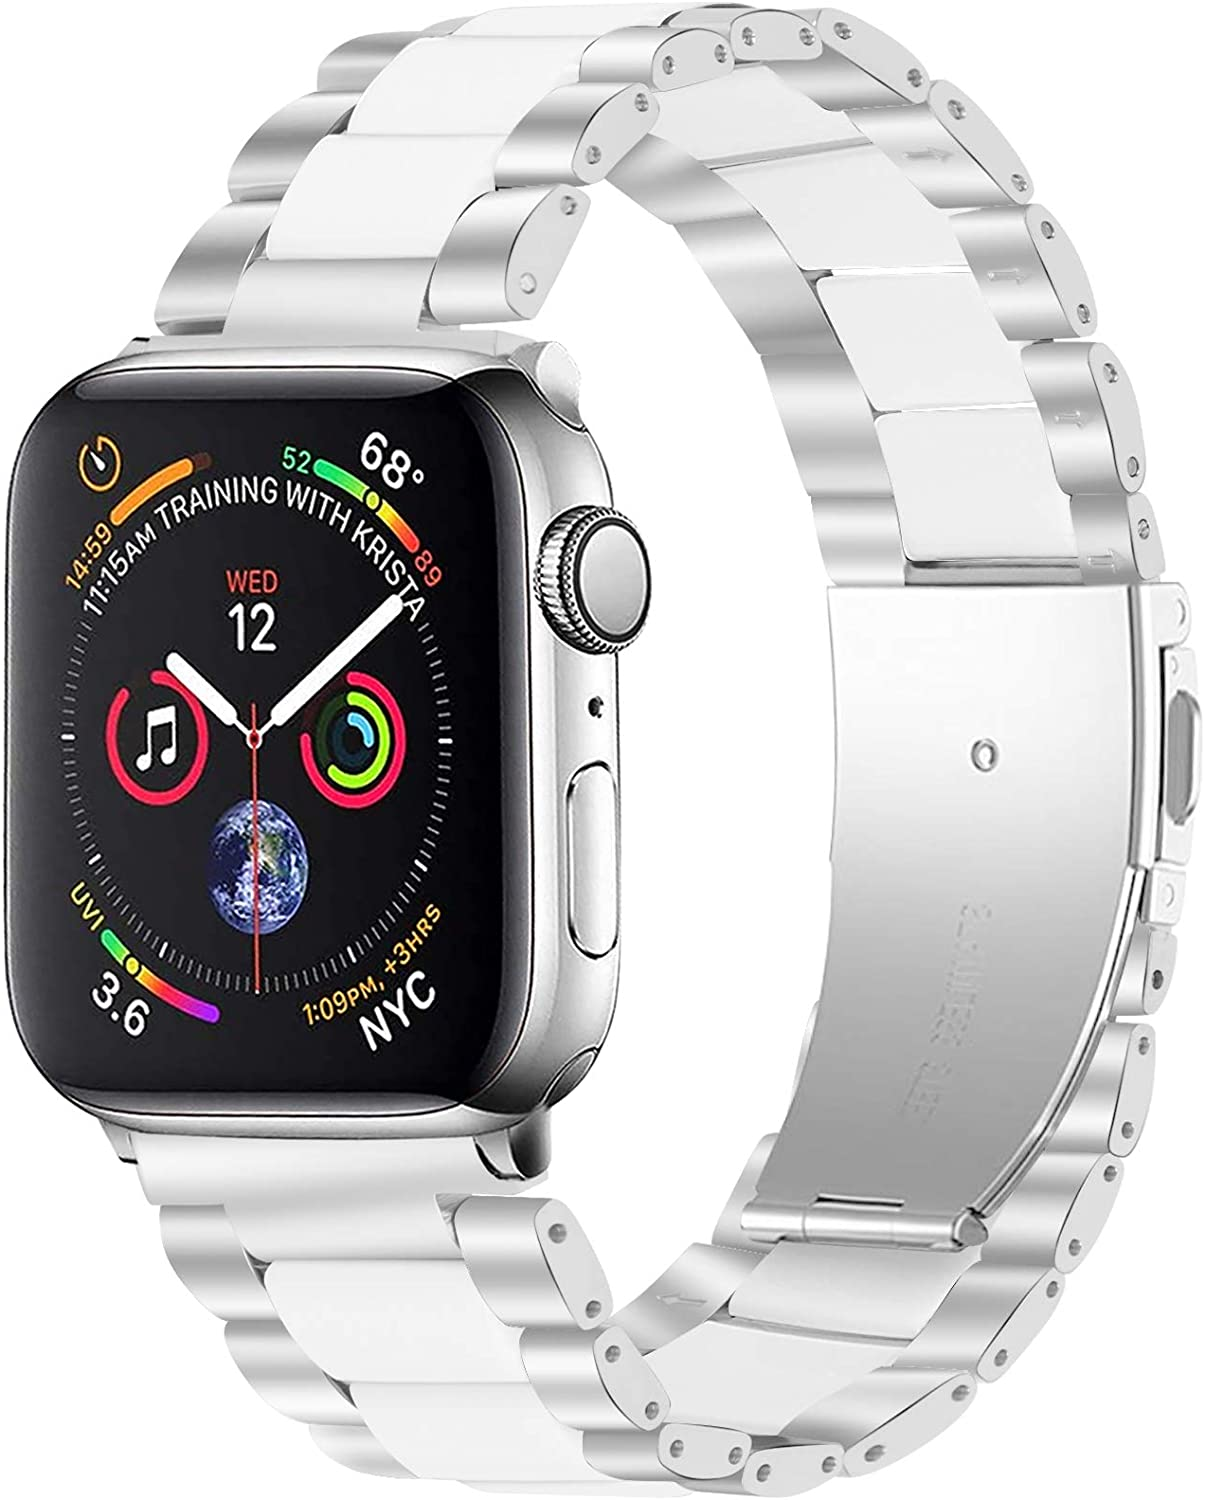 MEFEO Compatible with Apple Watch Bands 38mm 40mm 42mm 44mm, Resin Stainless Steel Metal Wristbands Bracelet Strap for iWatch Series 6/5/4/3/2/1 & iWatch SE (Silver + White, 42mm/44mm)